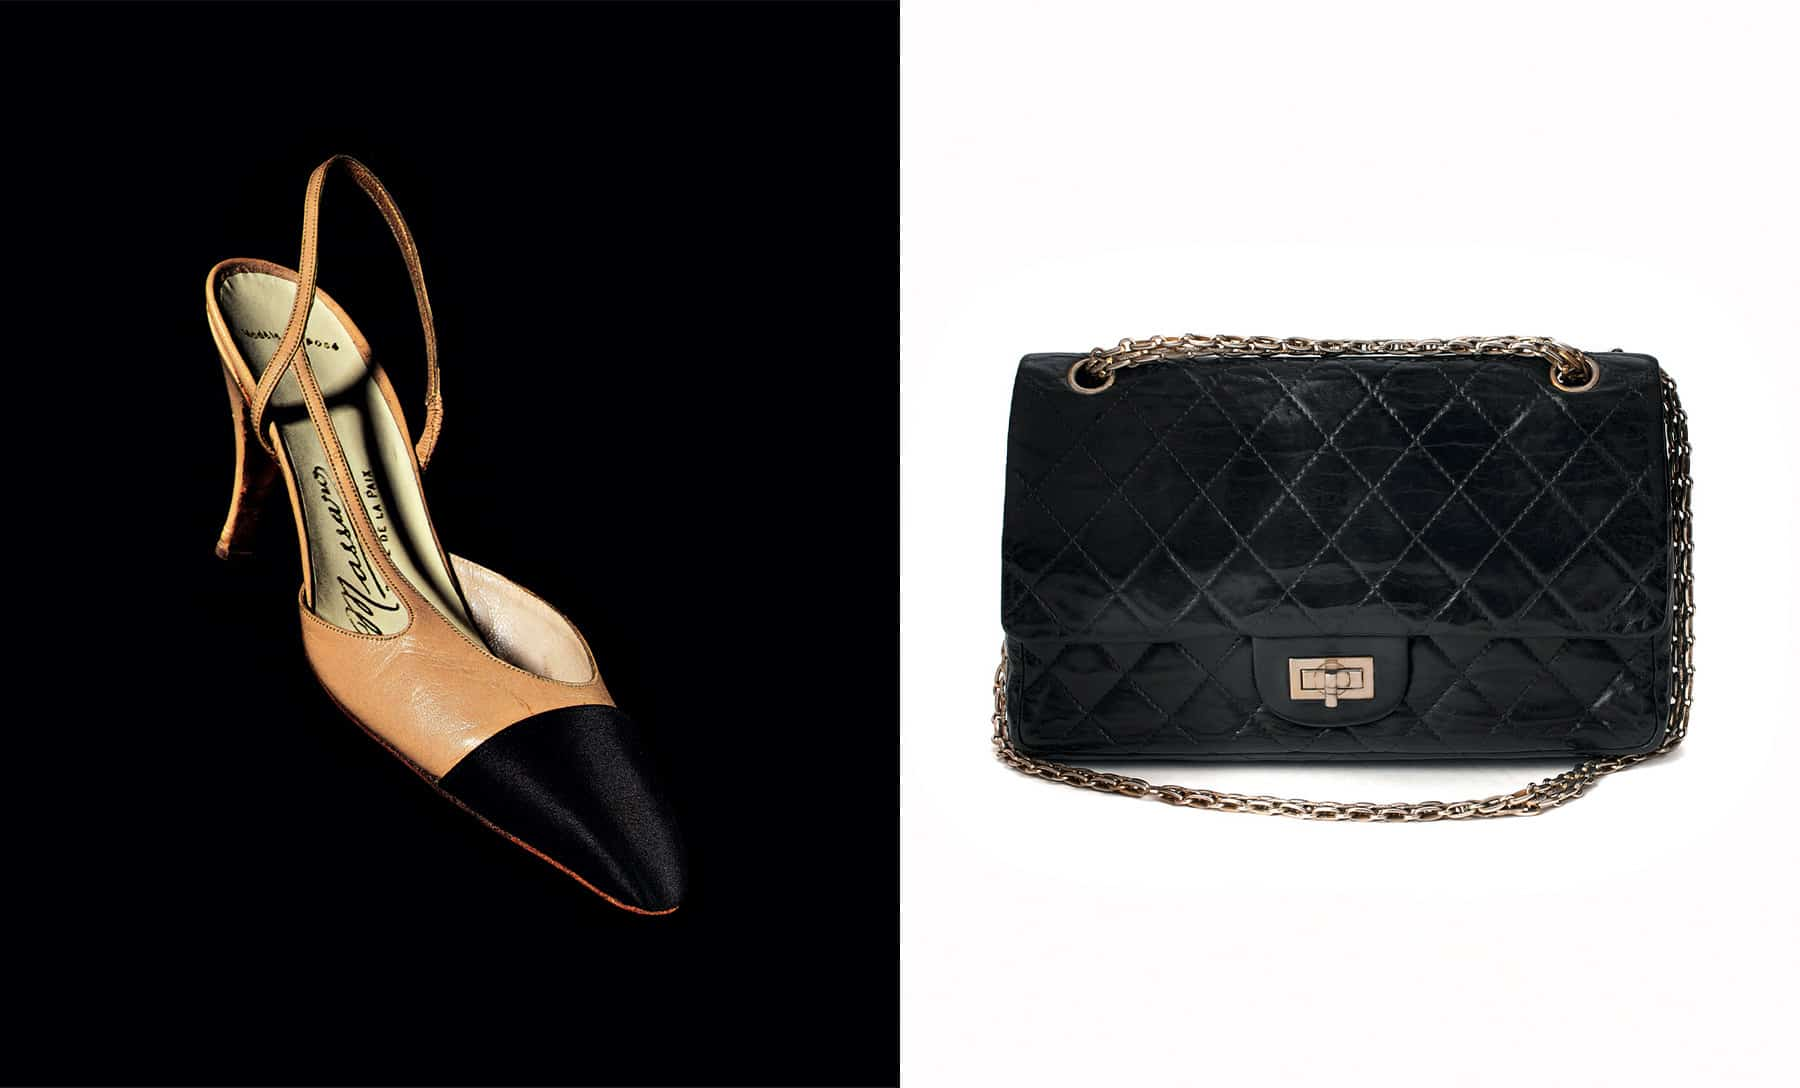 Chanel leather and satin shoes, quilted handbag